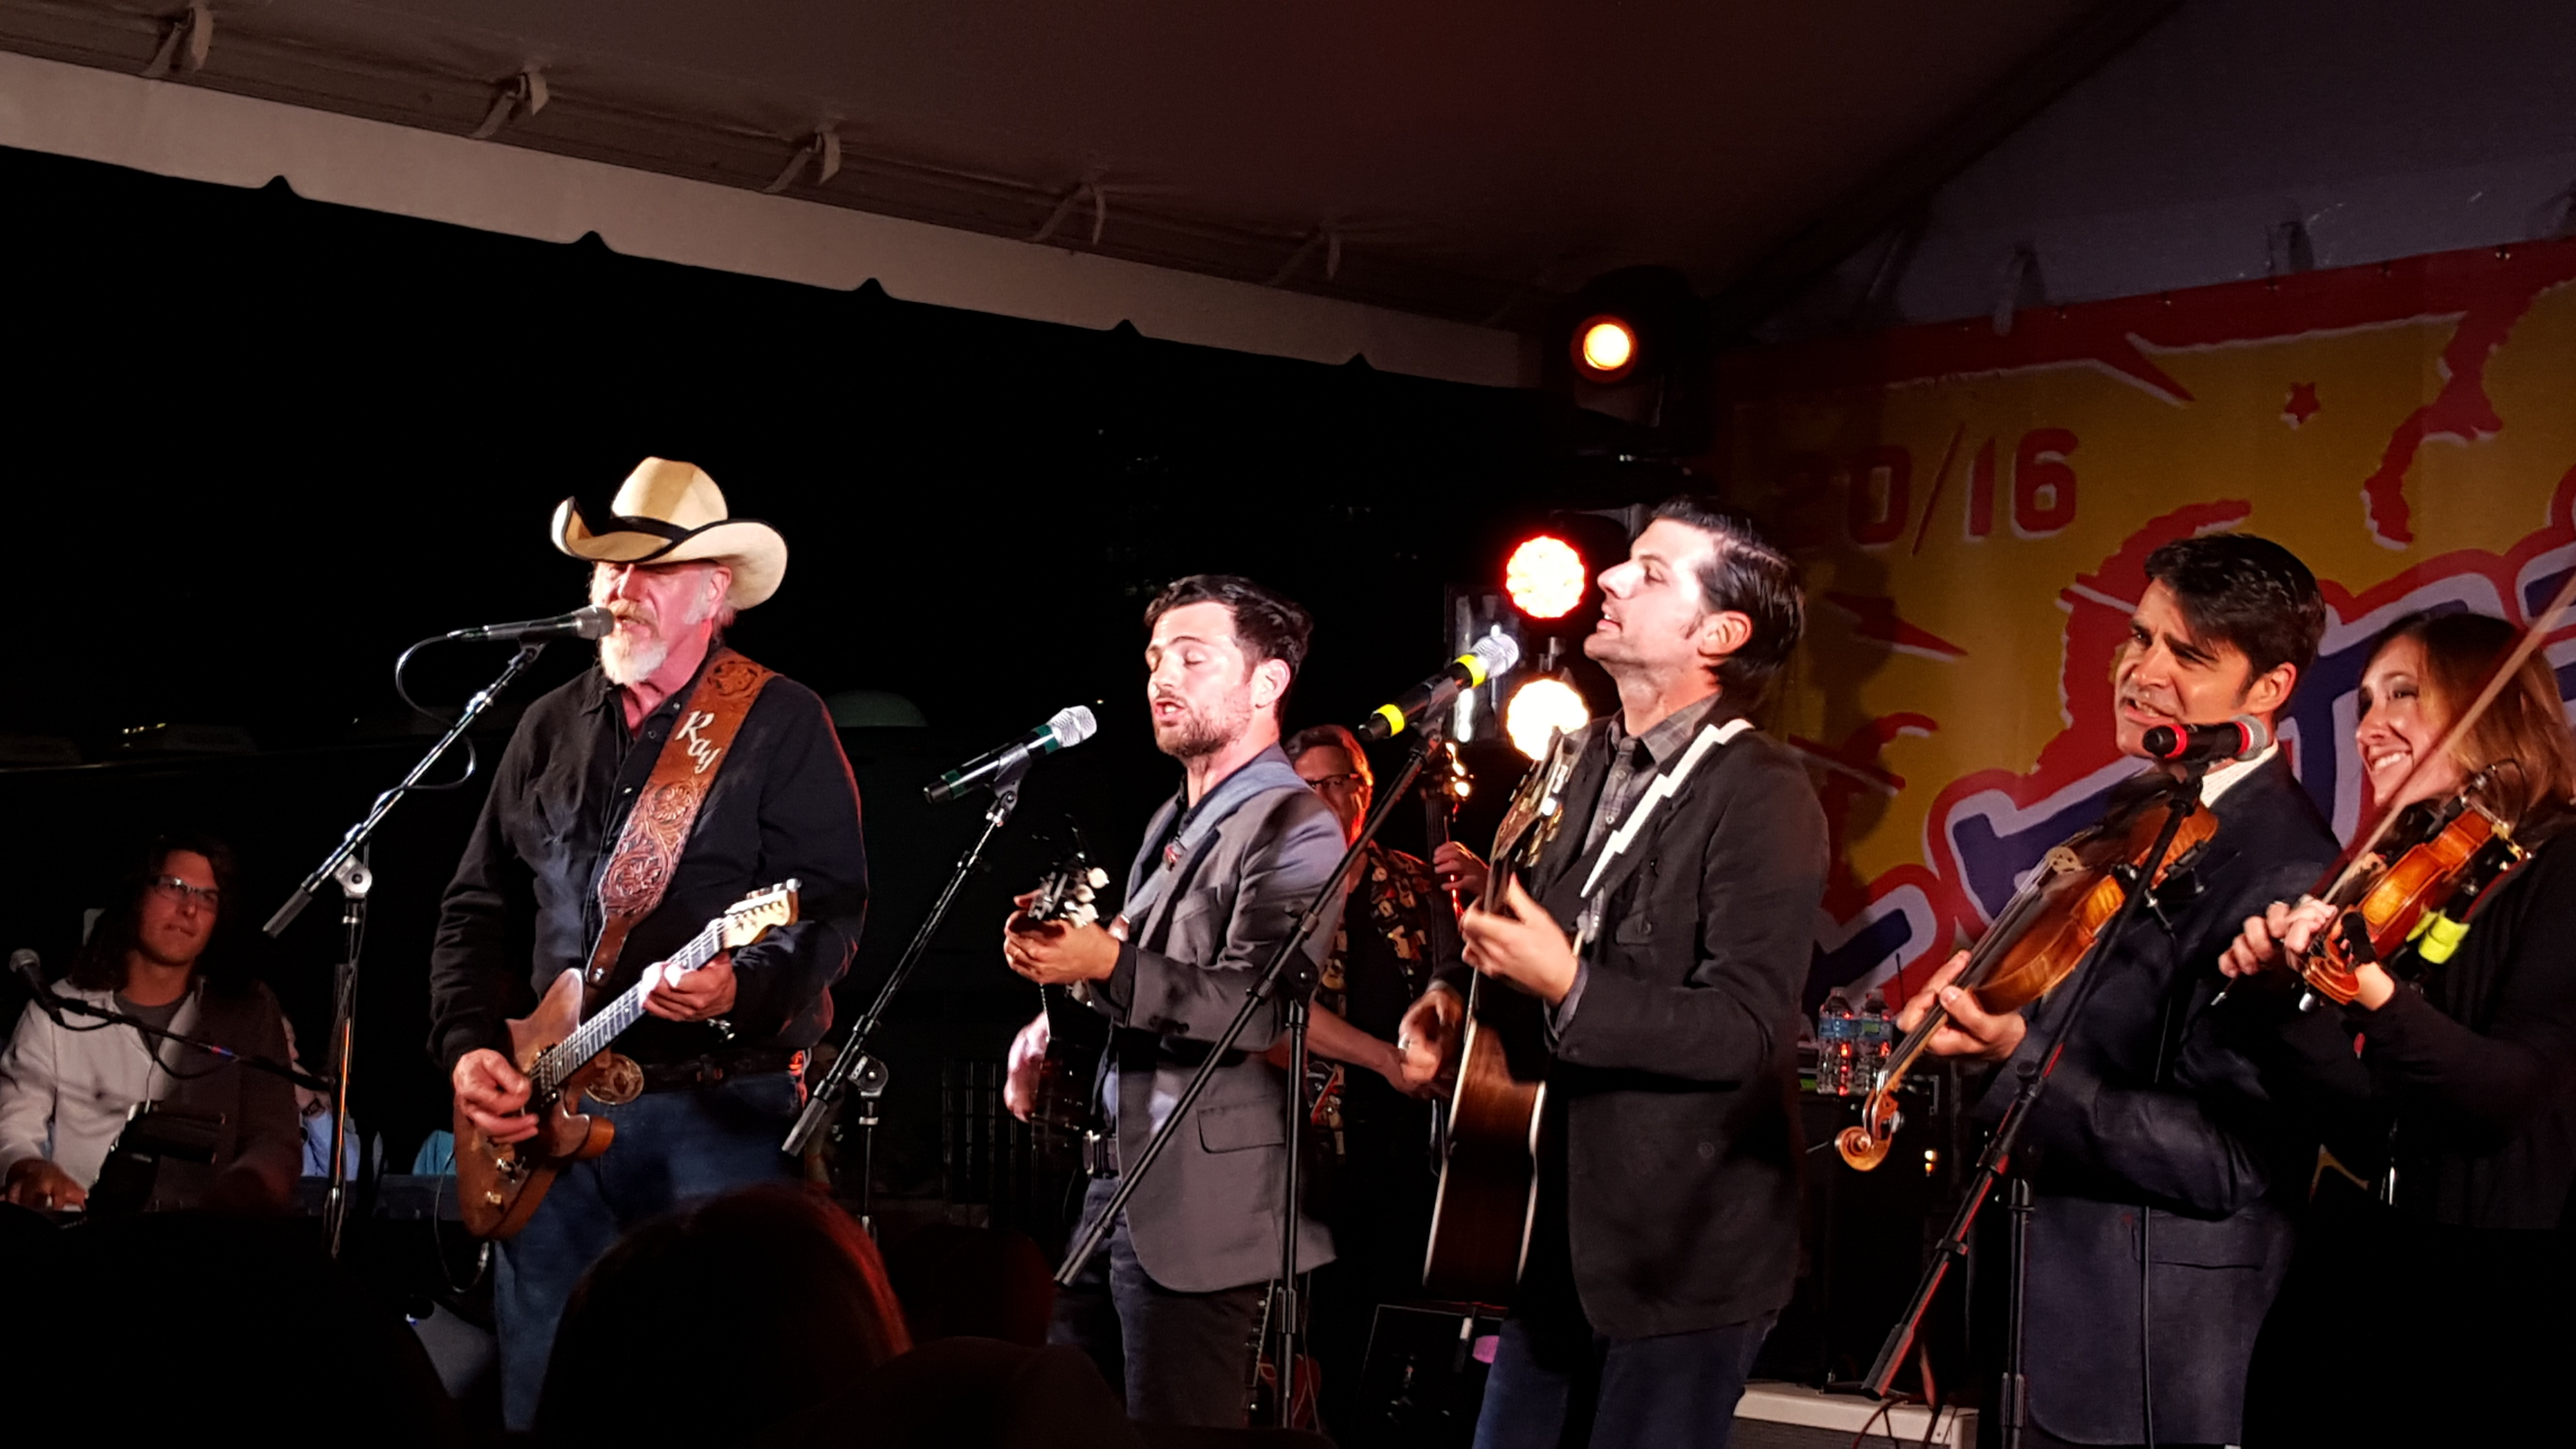 Ray Benson and The Avett Brothers